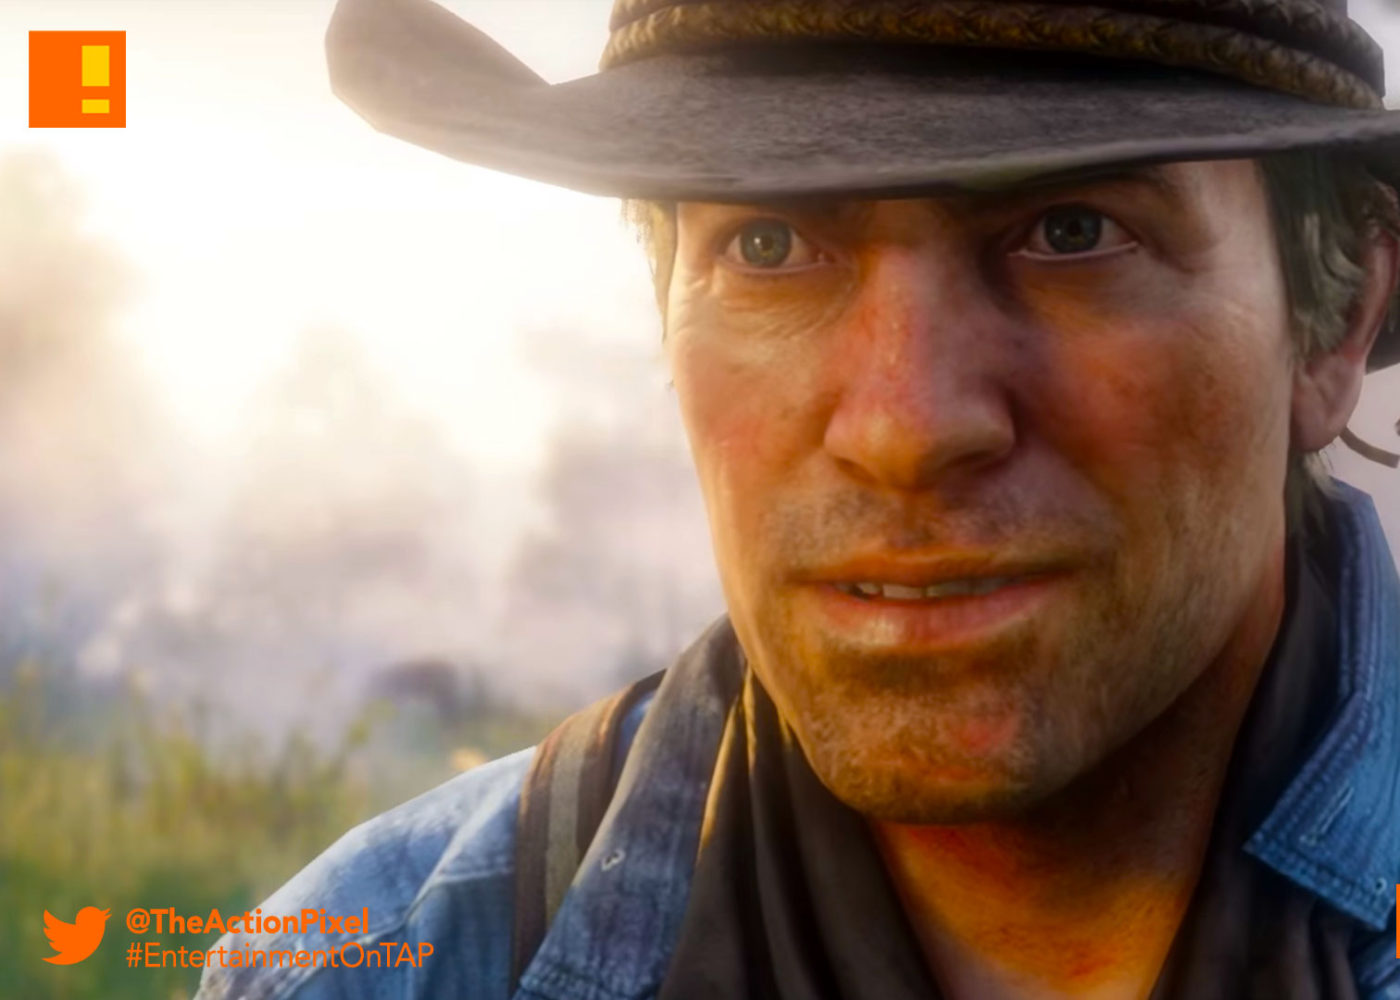 rockstar games, red dead redemption, entertainment on tap, the action pixel, rockstar games, delayed, screenshots, trailer, trailer 2,